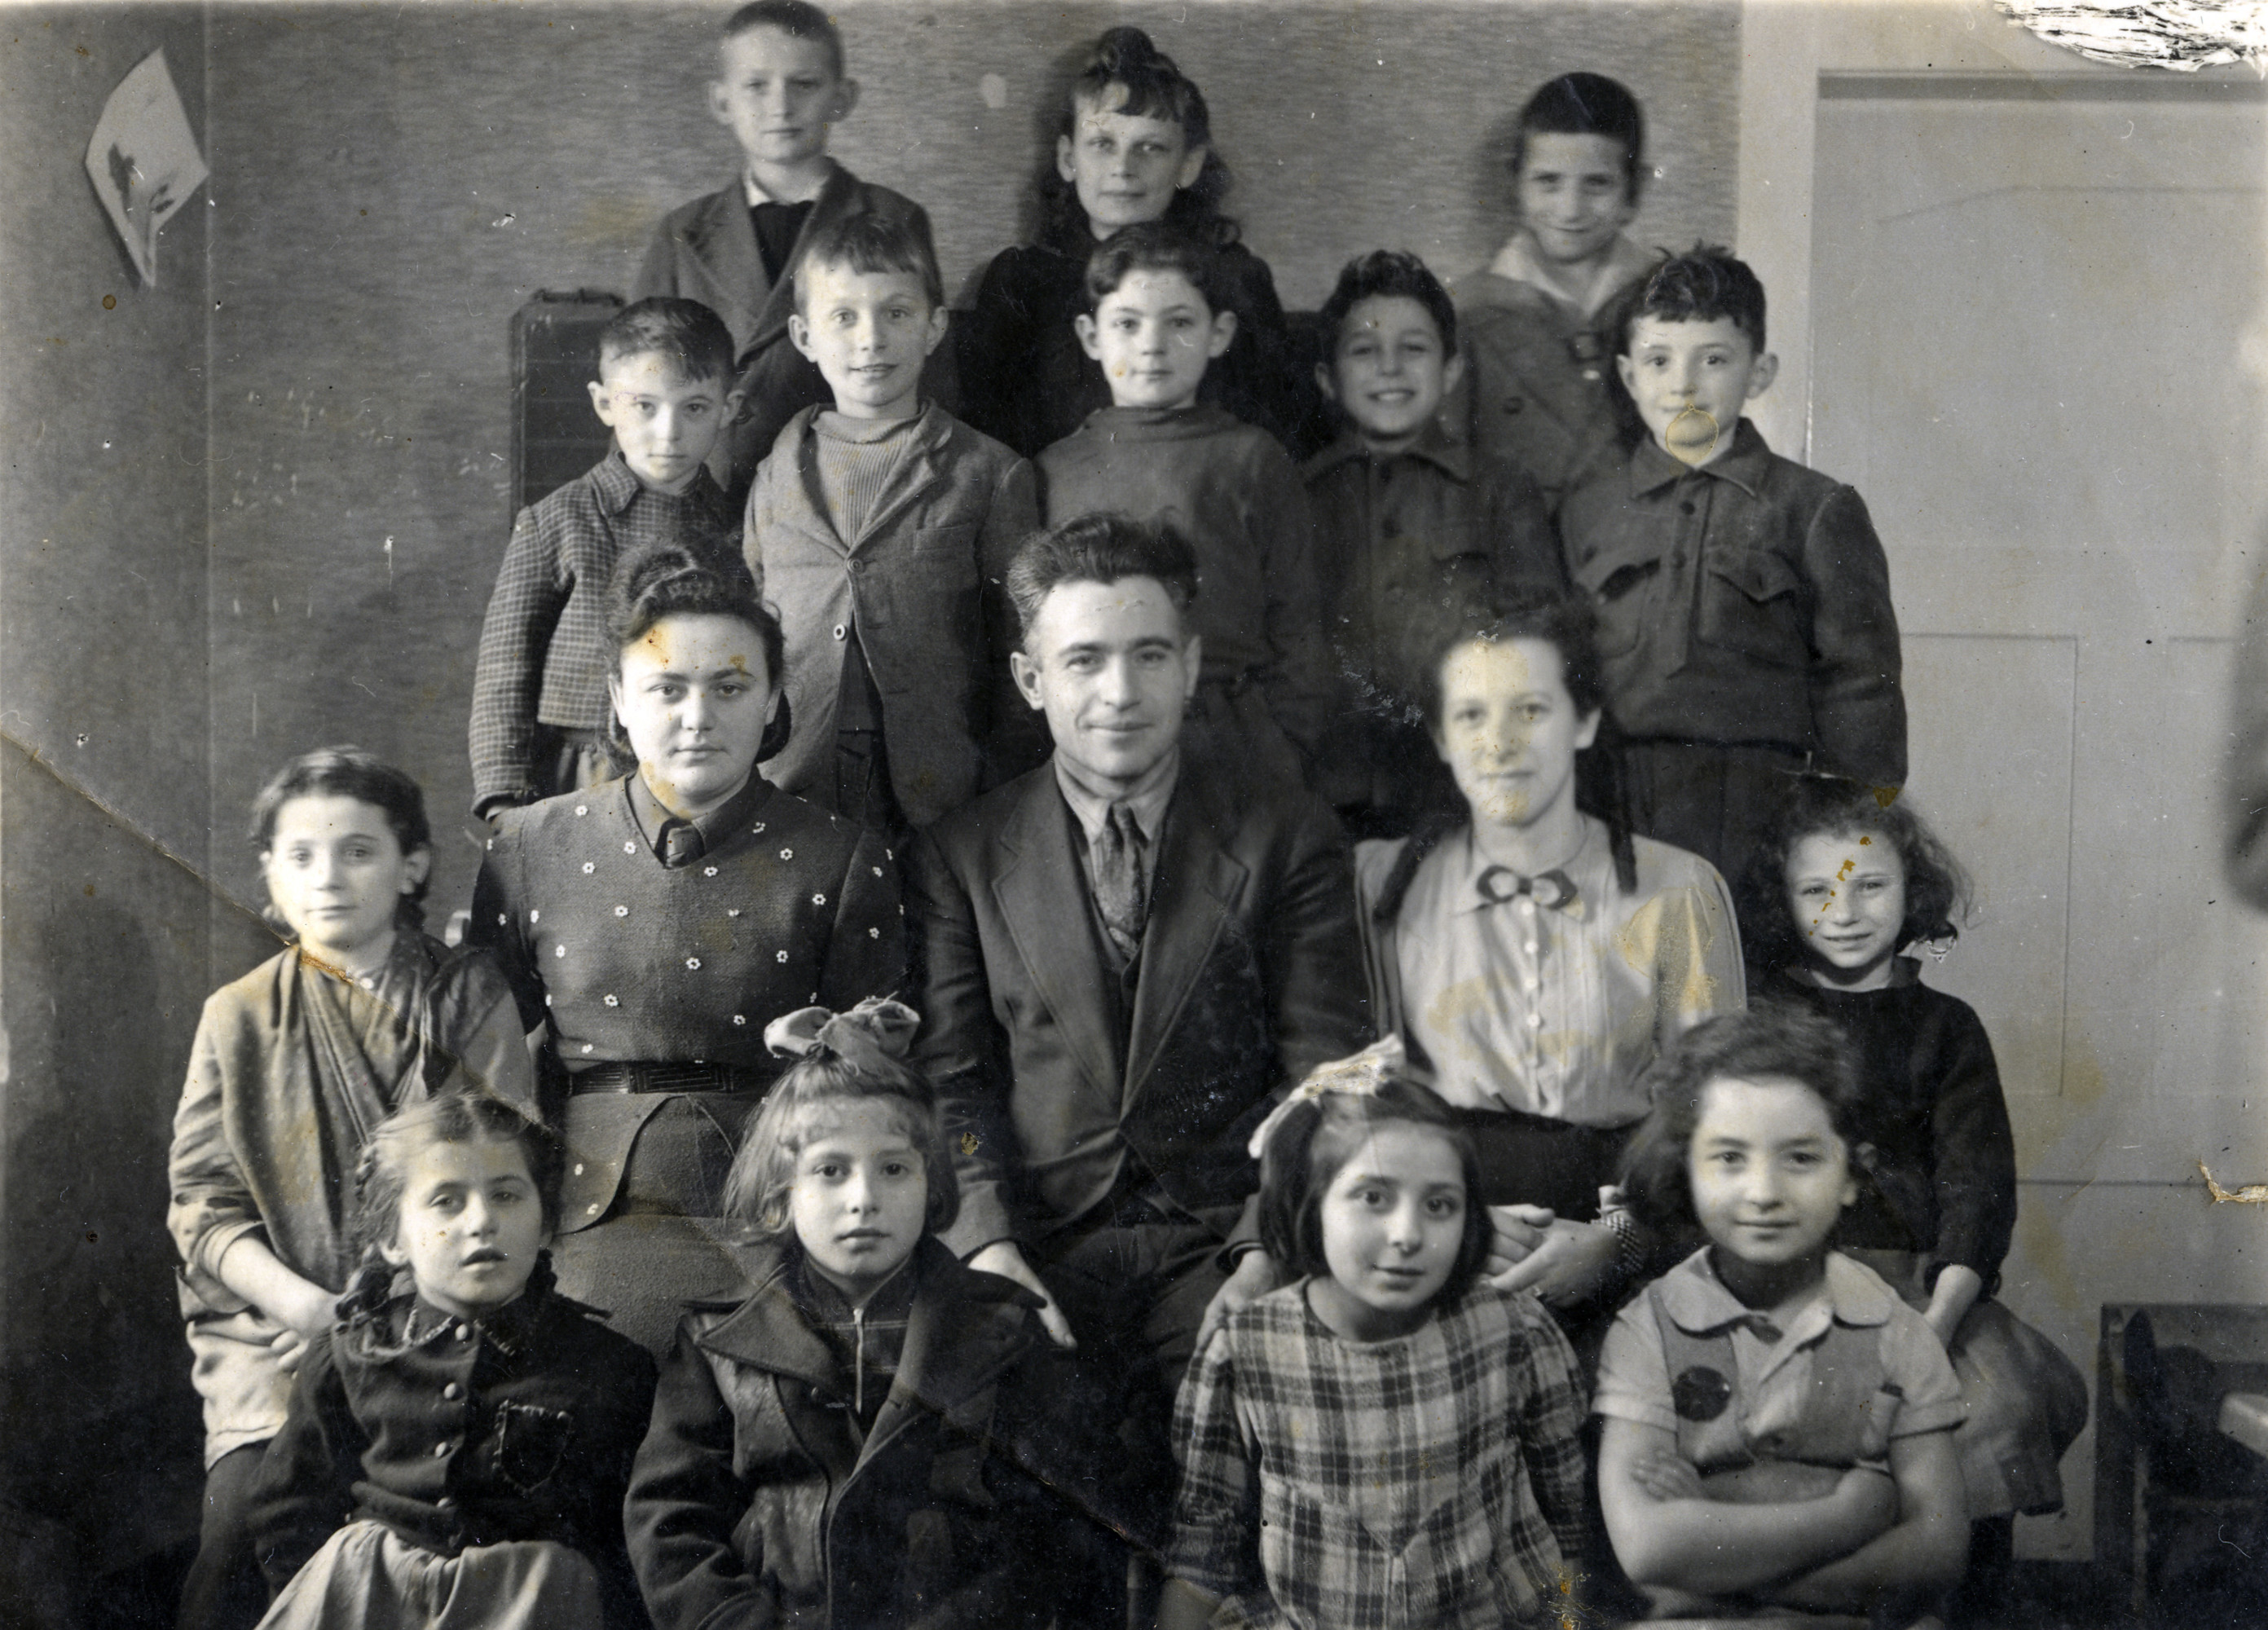 Group portrait of a school in Heidenheim displaced persons camp.  Among those pictured is Zippora Golomb (second row, far right).  The teachers are pictured in the middle.